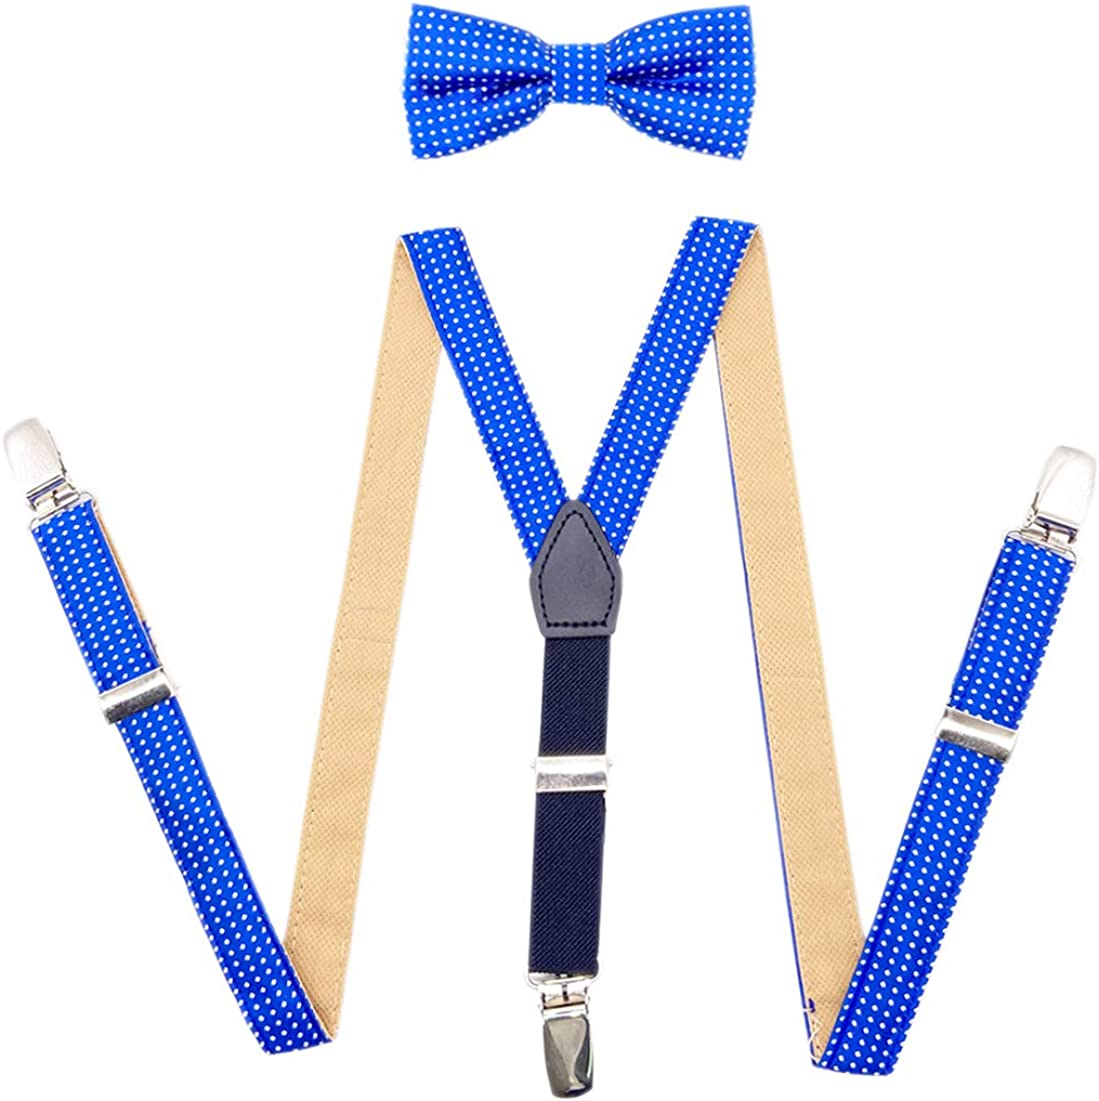 AYOSUSH Suspenders with Bowties Set for Boys Kids Y Shape Elastic 3 Clips Braces